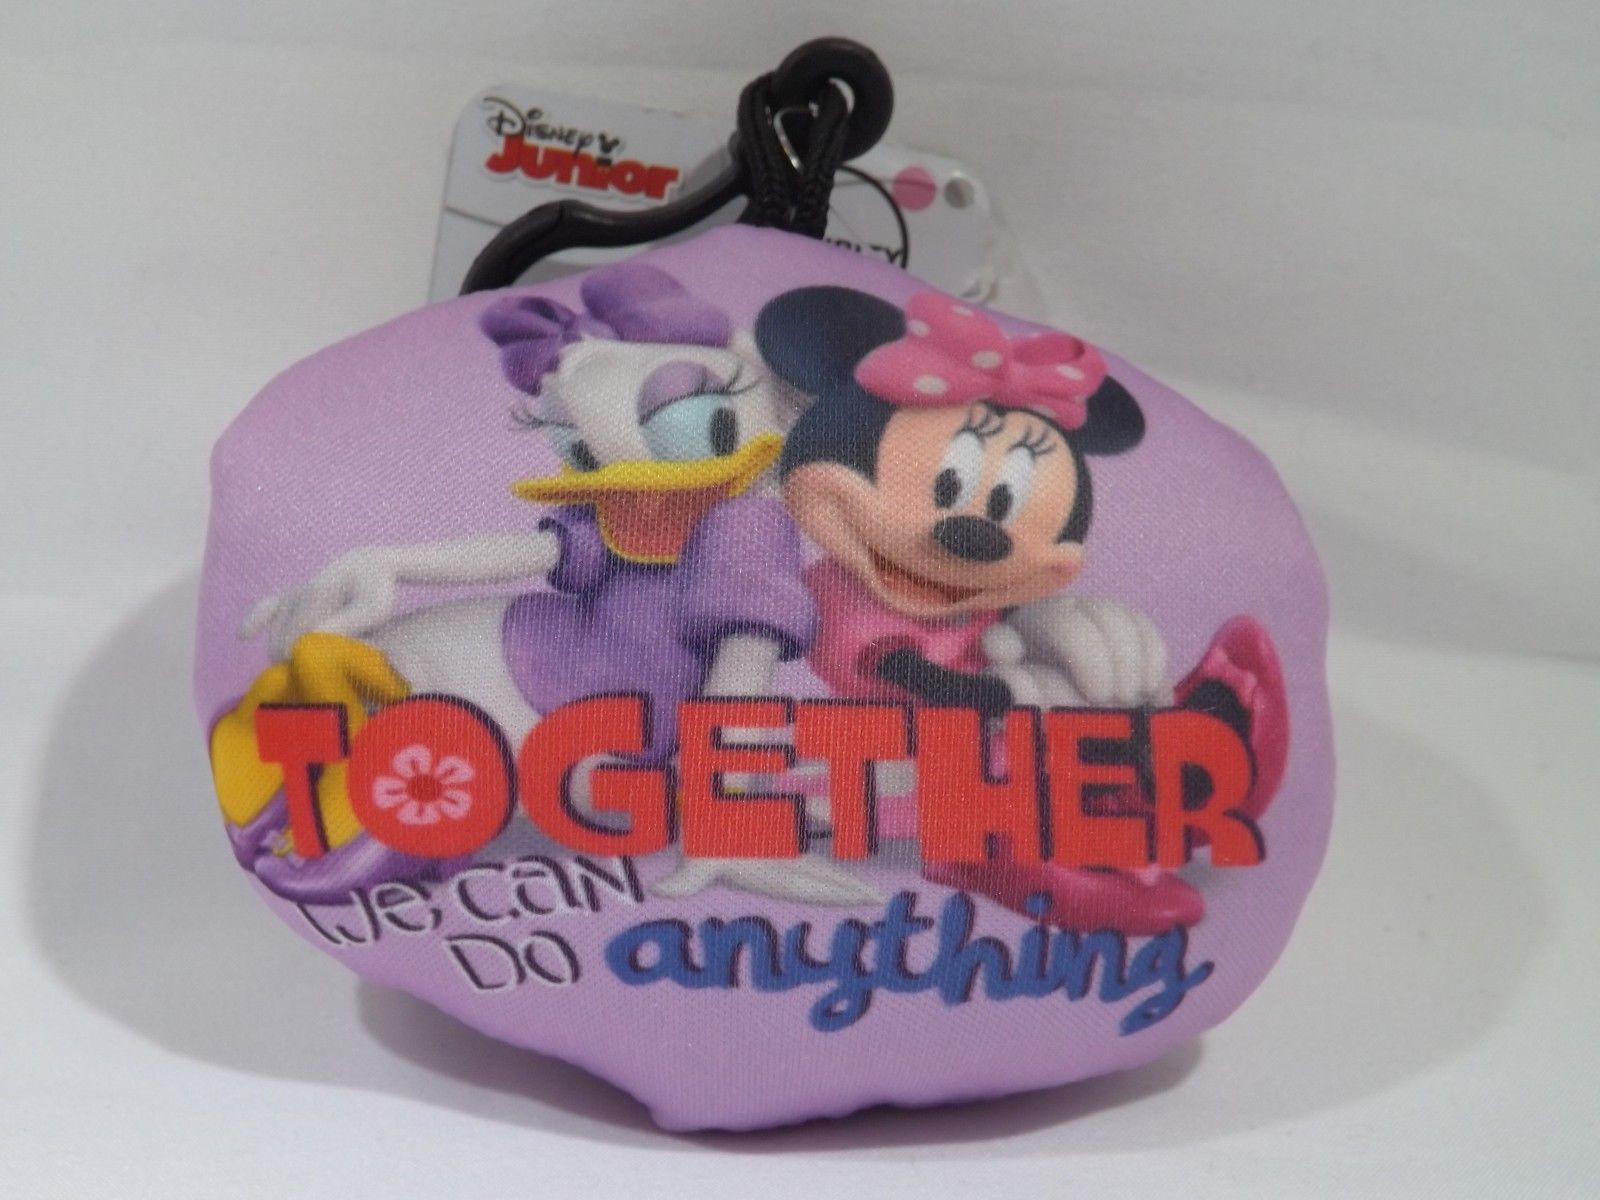 Belt Bag Clip Squish Keychain - New - Assorted Characters image 3